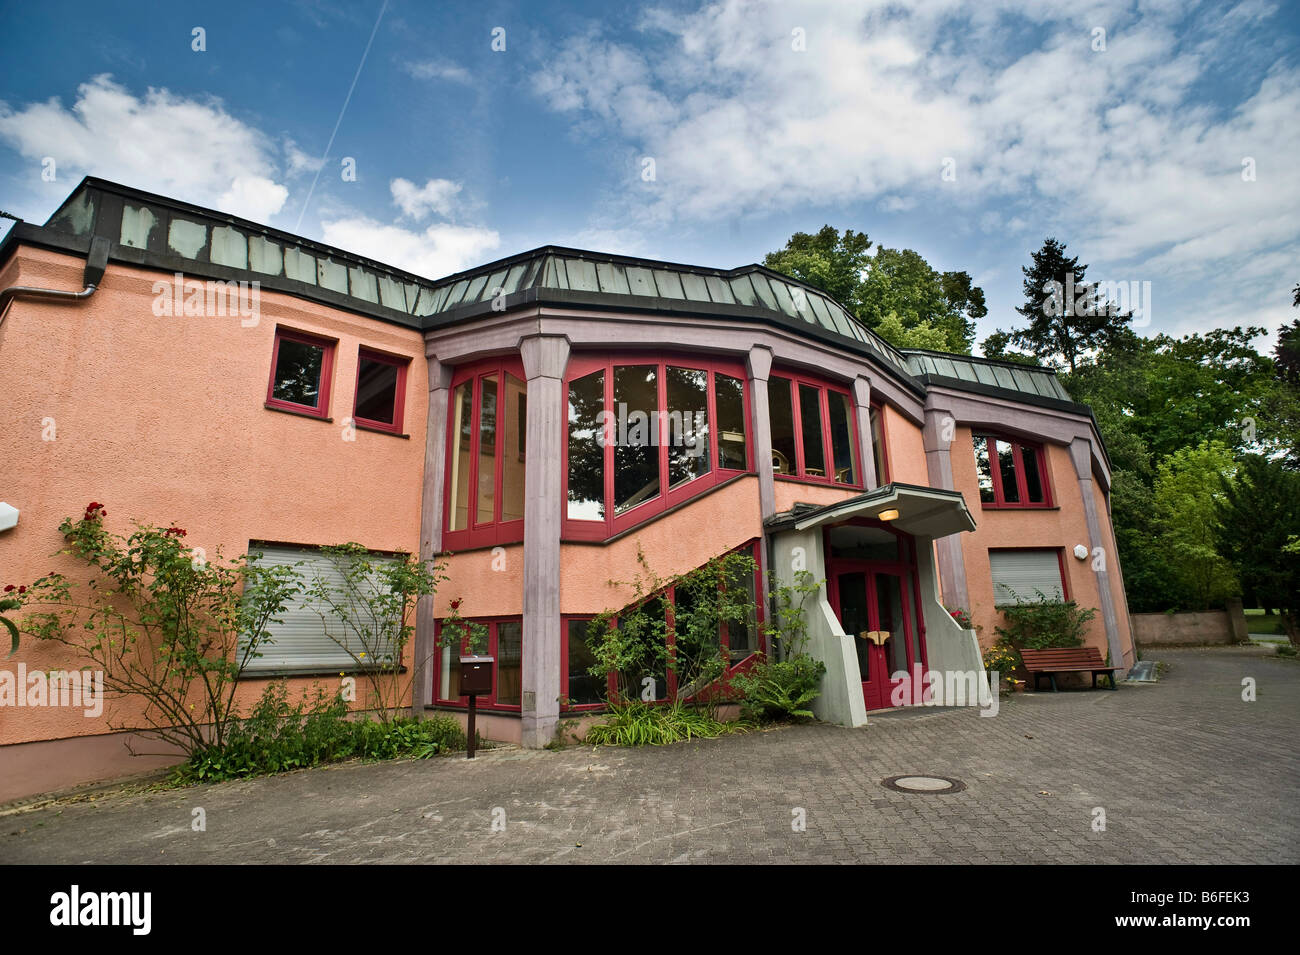 Rudolf Steine House of the Anthroposophical Society, Working Center Berlin, Germany, Europe - Stock Image